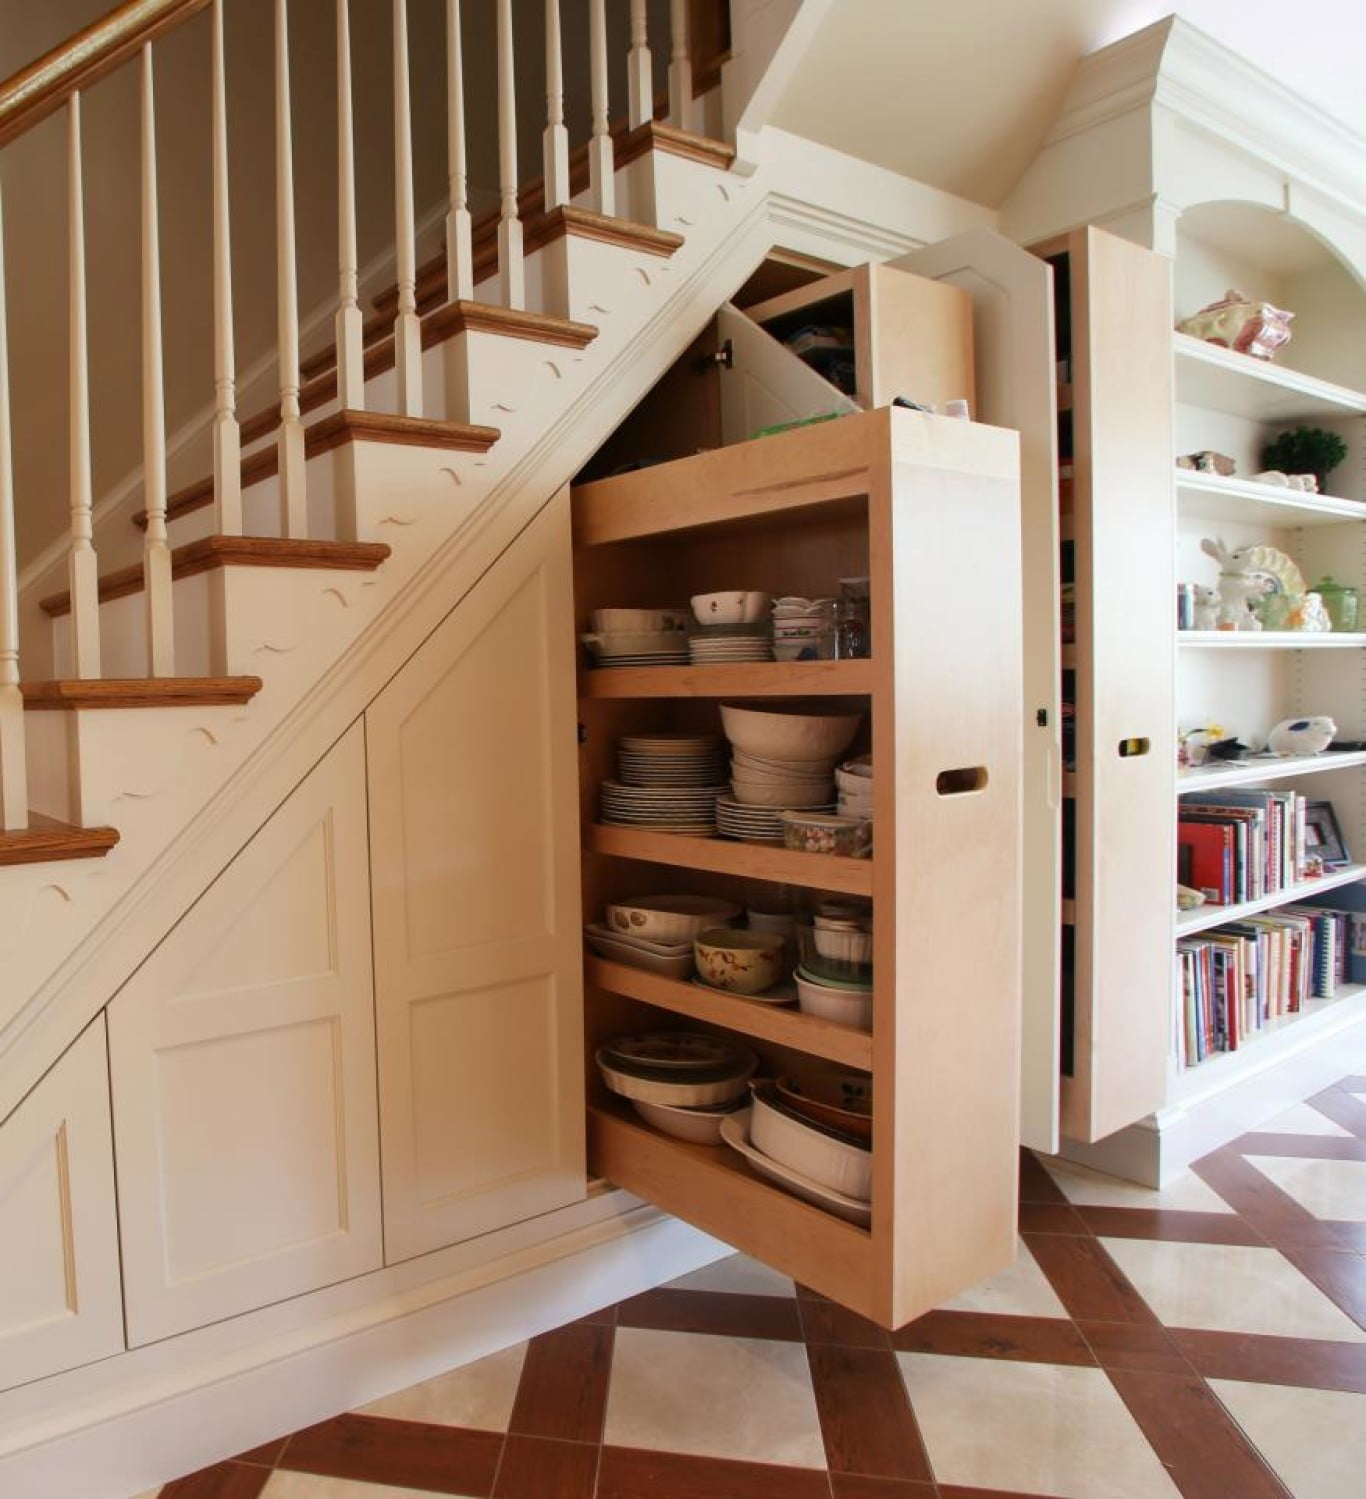 60 Under Stairs Storage Ideas For Small Spaces Making Your: Bespoke Under Stairs Shelving